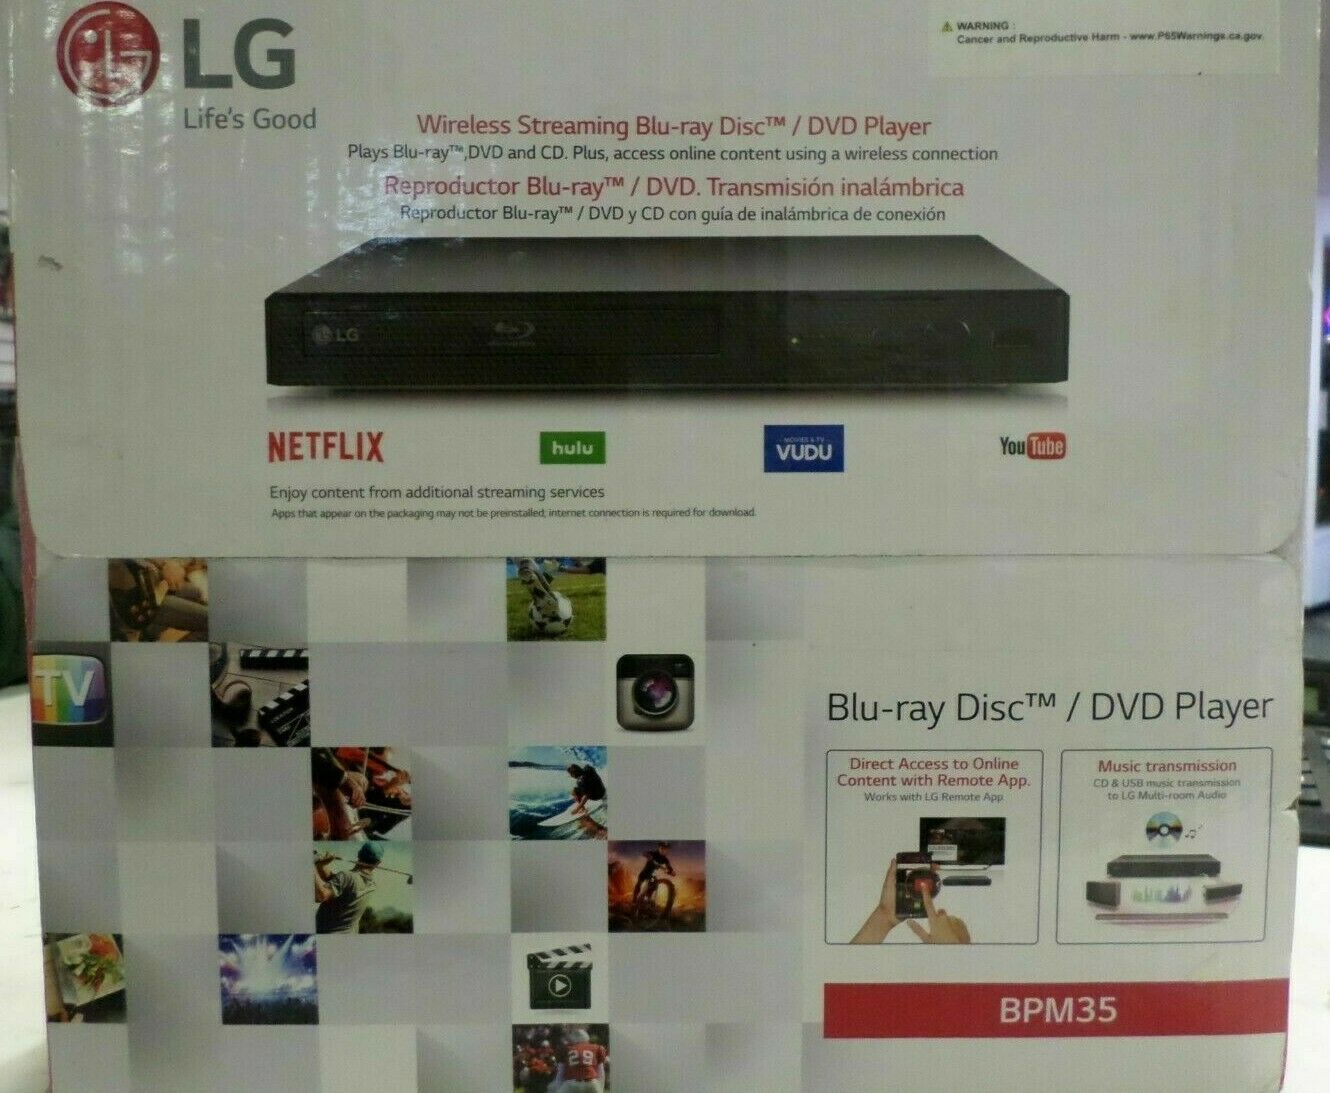 LG Electronics BPM35 Blu-ray Disc Player with Streaming Services Wifi Netflix bpm35 disc electronics netflix player services streaming wifi with